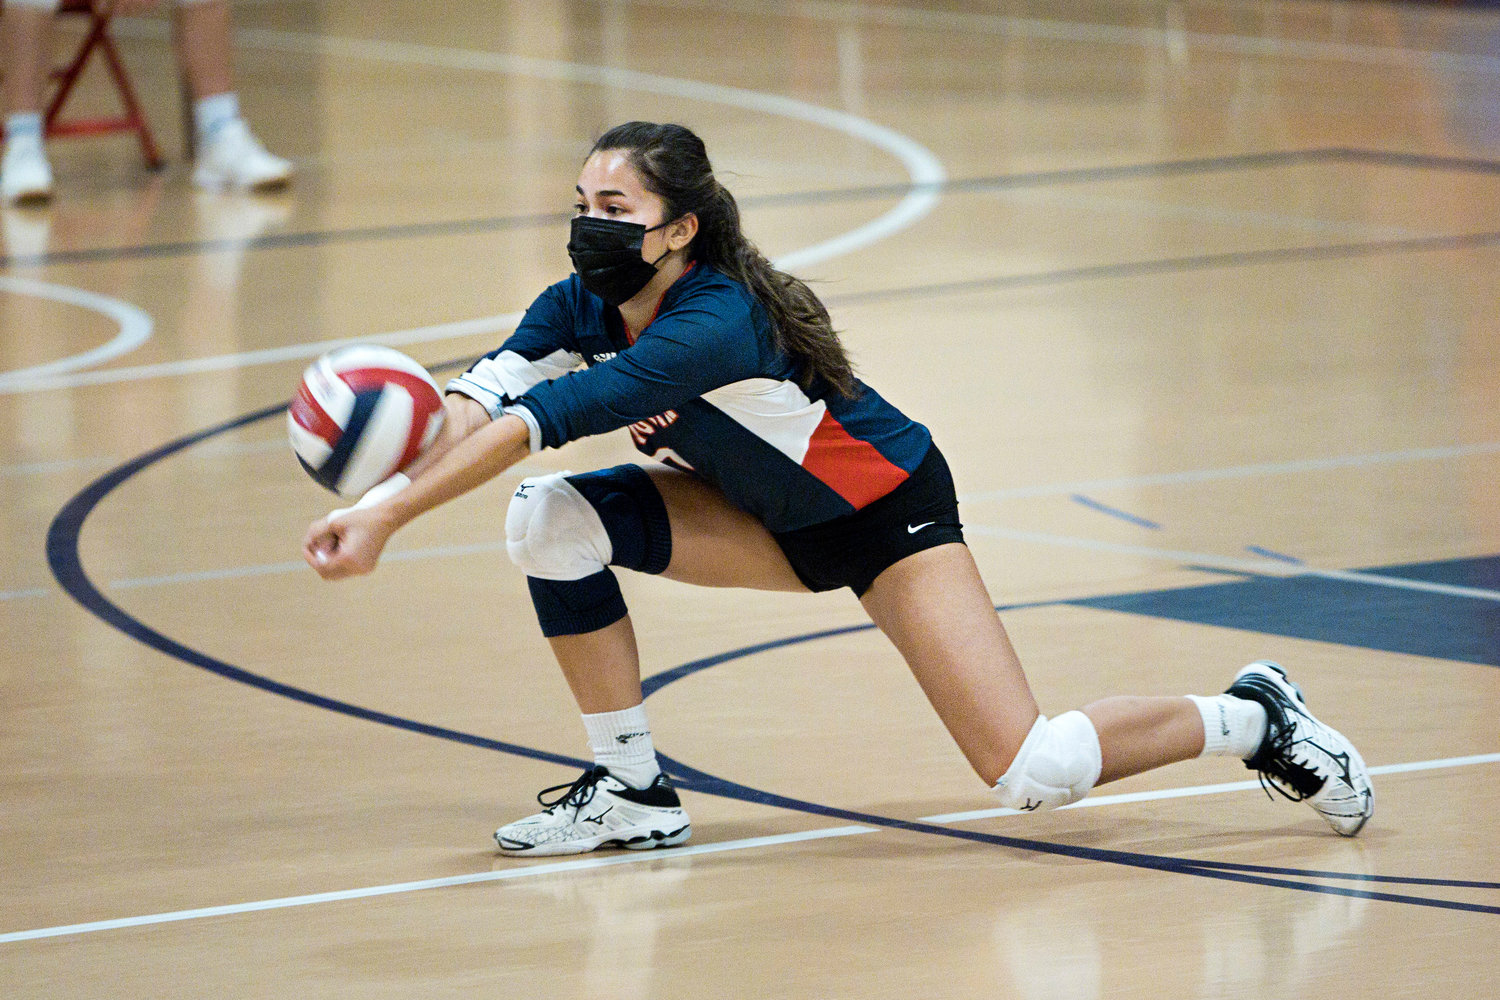 Allison Casciano receives a serve during Friday night's game.